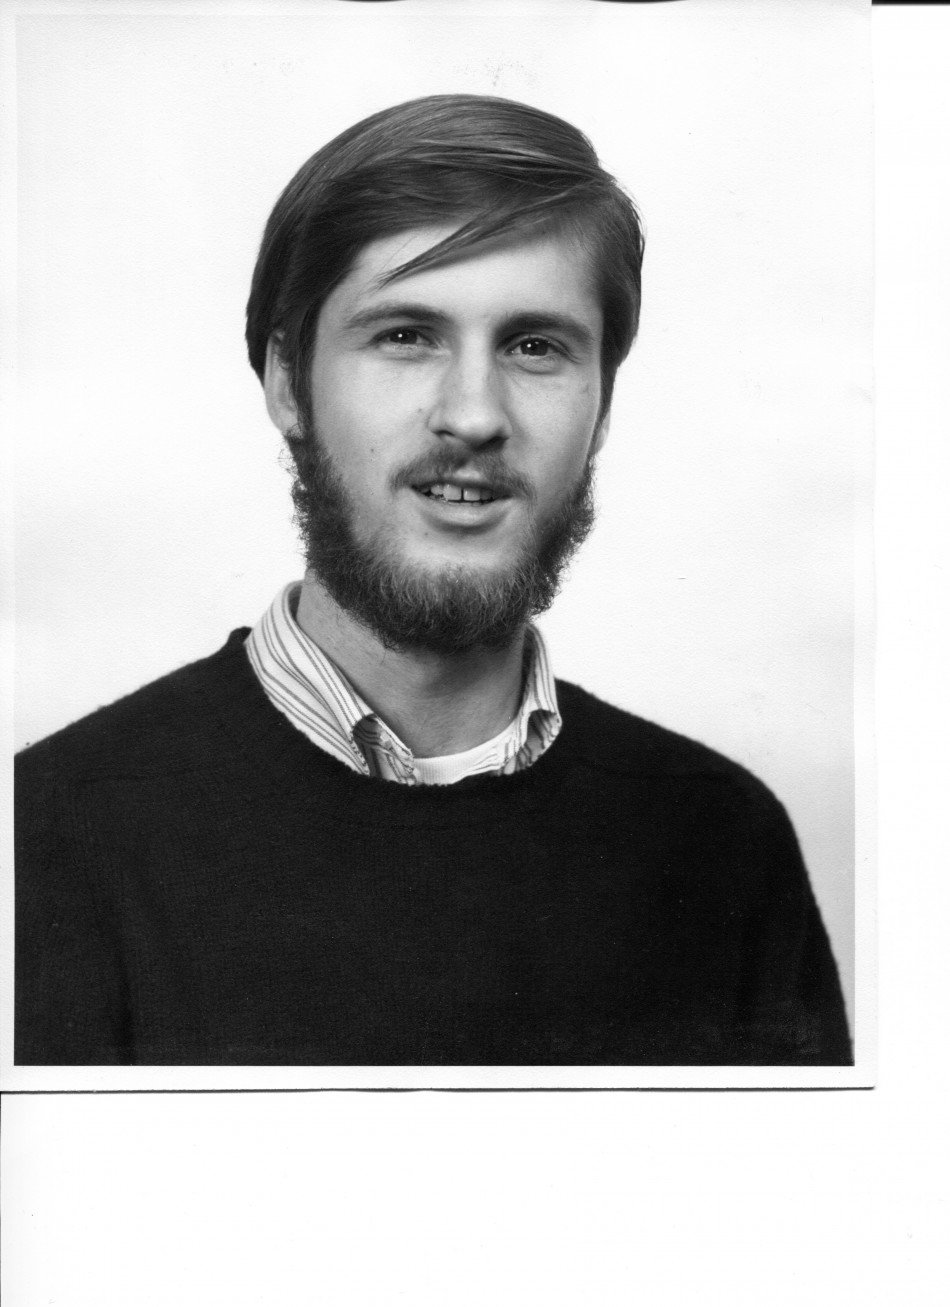 THE FIRST BEARD